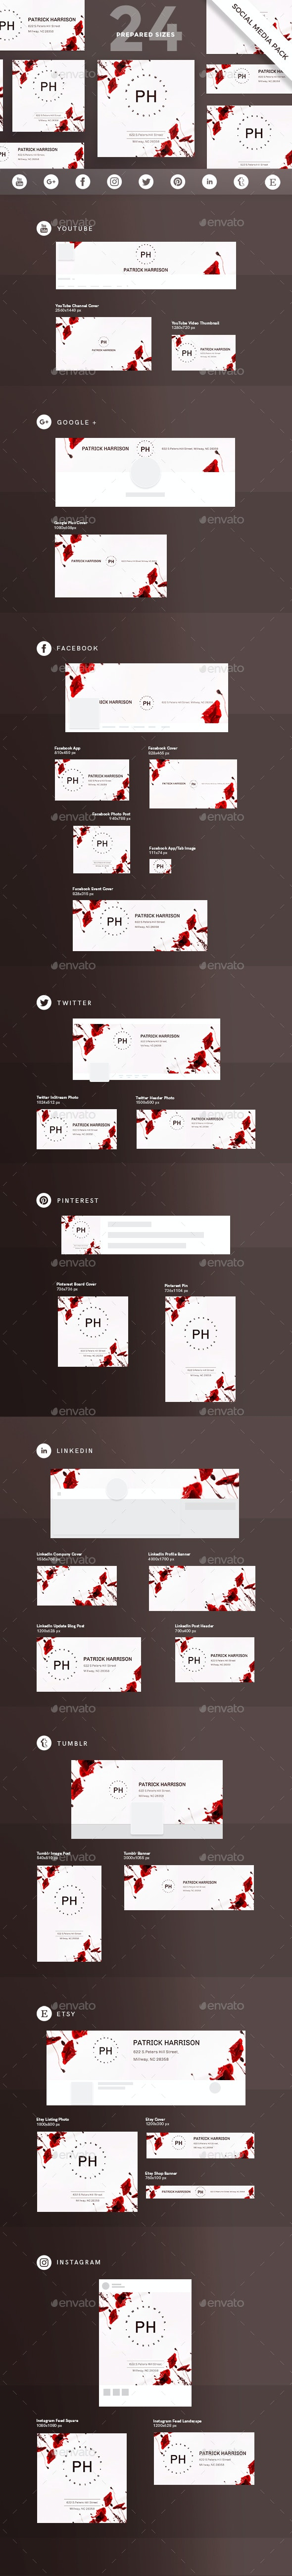 Womenswear Designer Social Media Pack - Miscellaneous Social Media